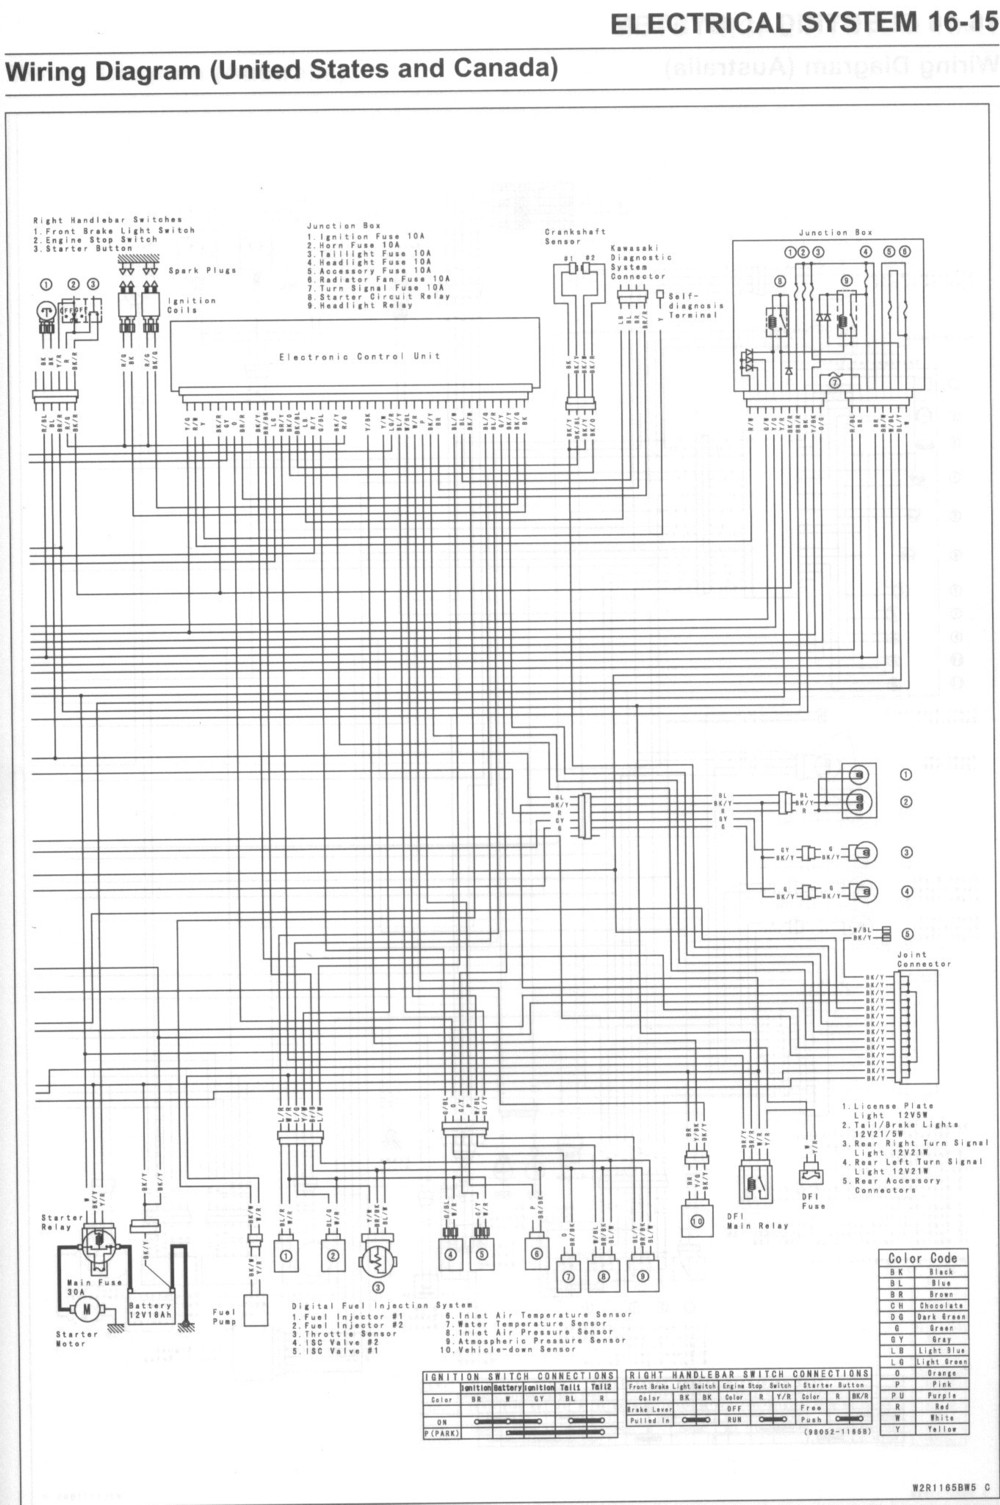 hight resolution of kawasaki vn 1500 wiring diagram wiring diagram sys kawasaki nomad 1500 wiring diagram kawasaki 1500 wiring diagram